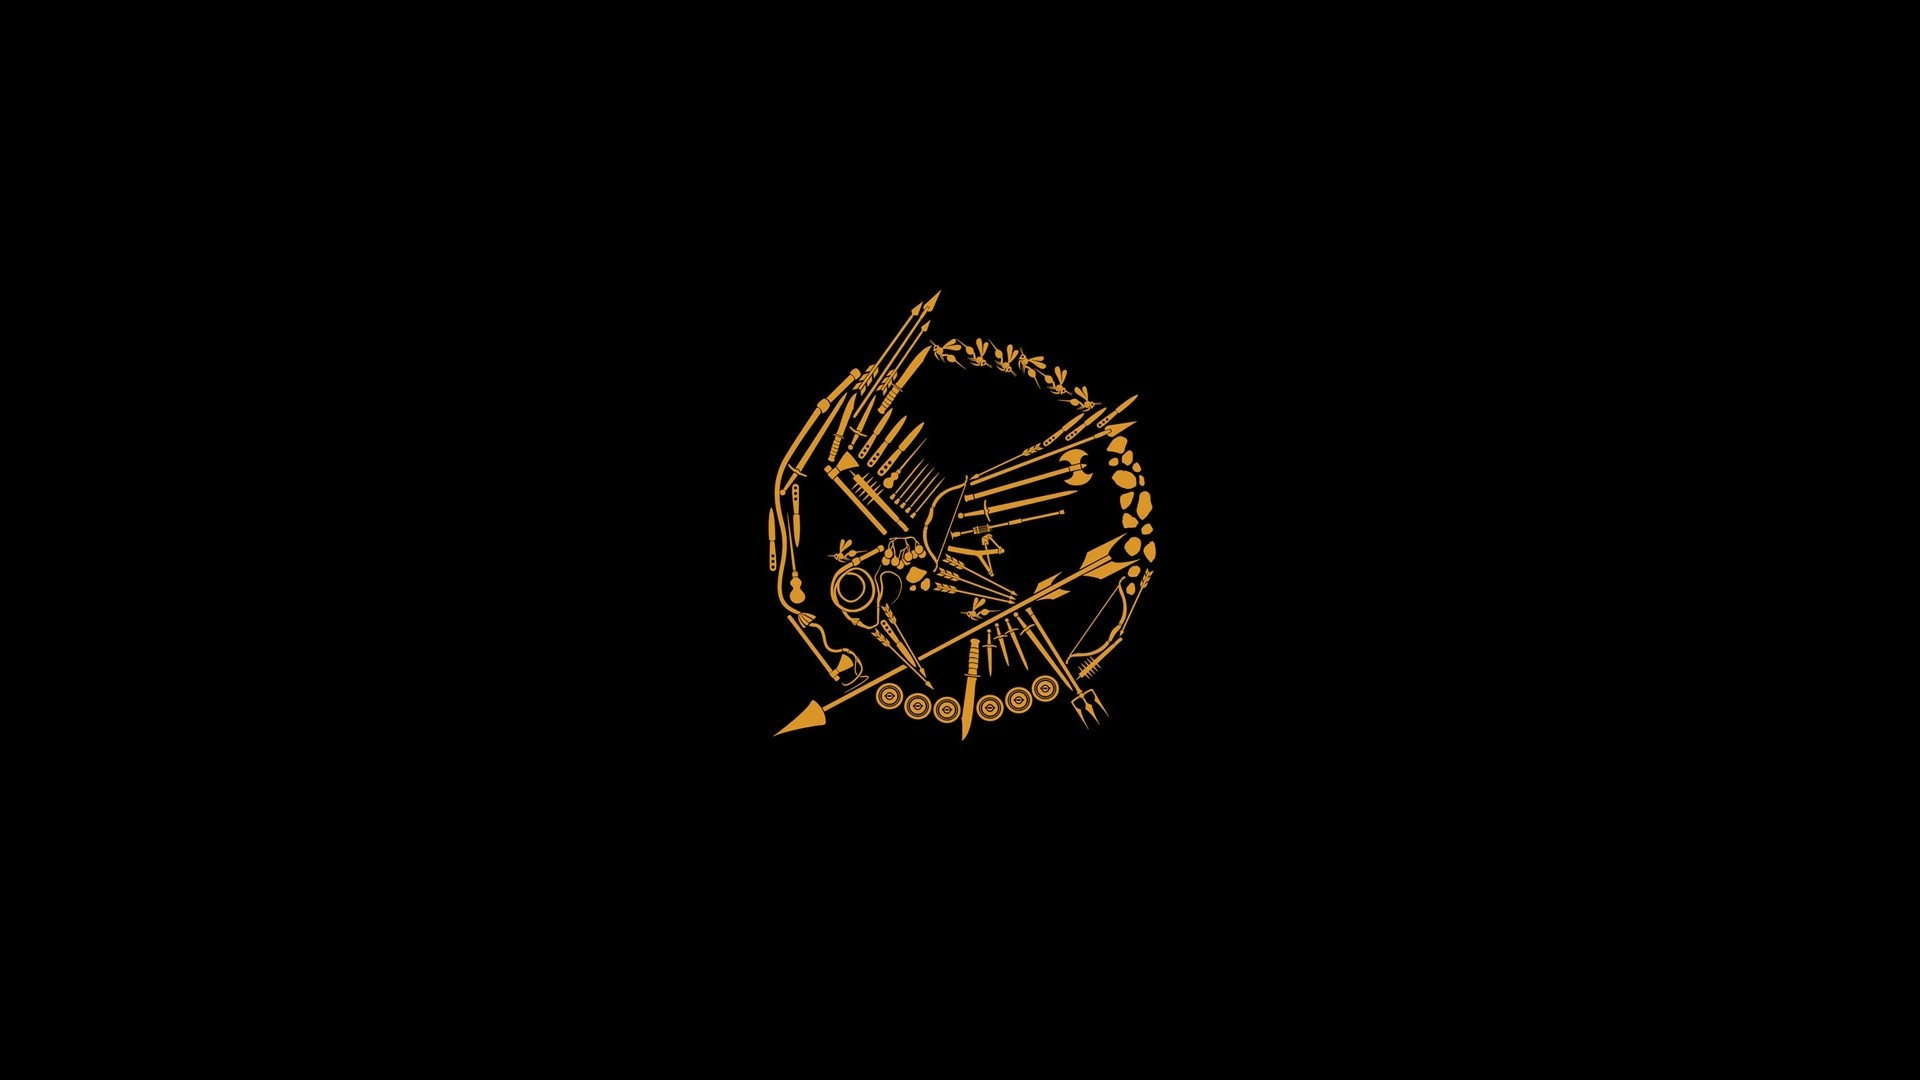 1920x1080 Movie - The Hunger Games Mockingjay Wallpaper